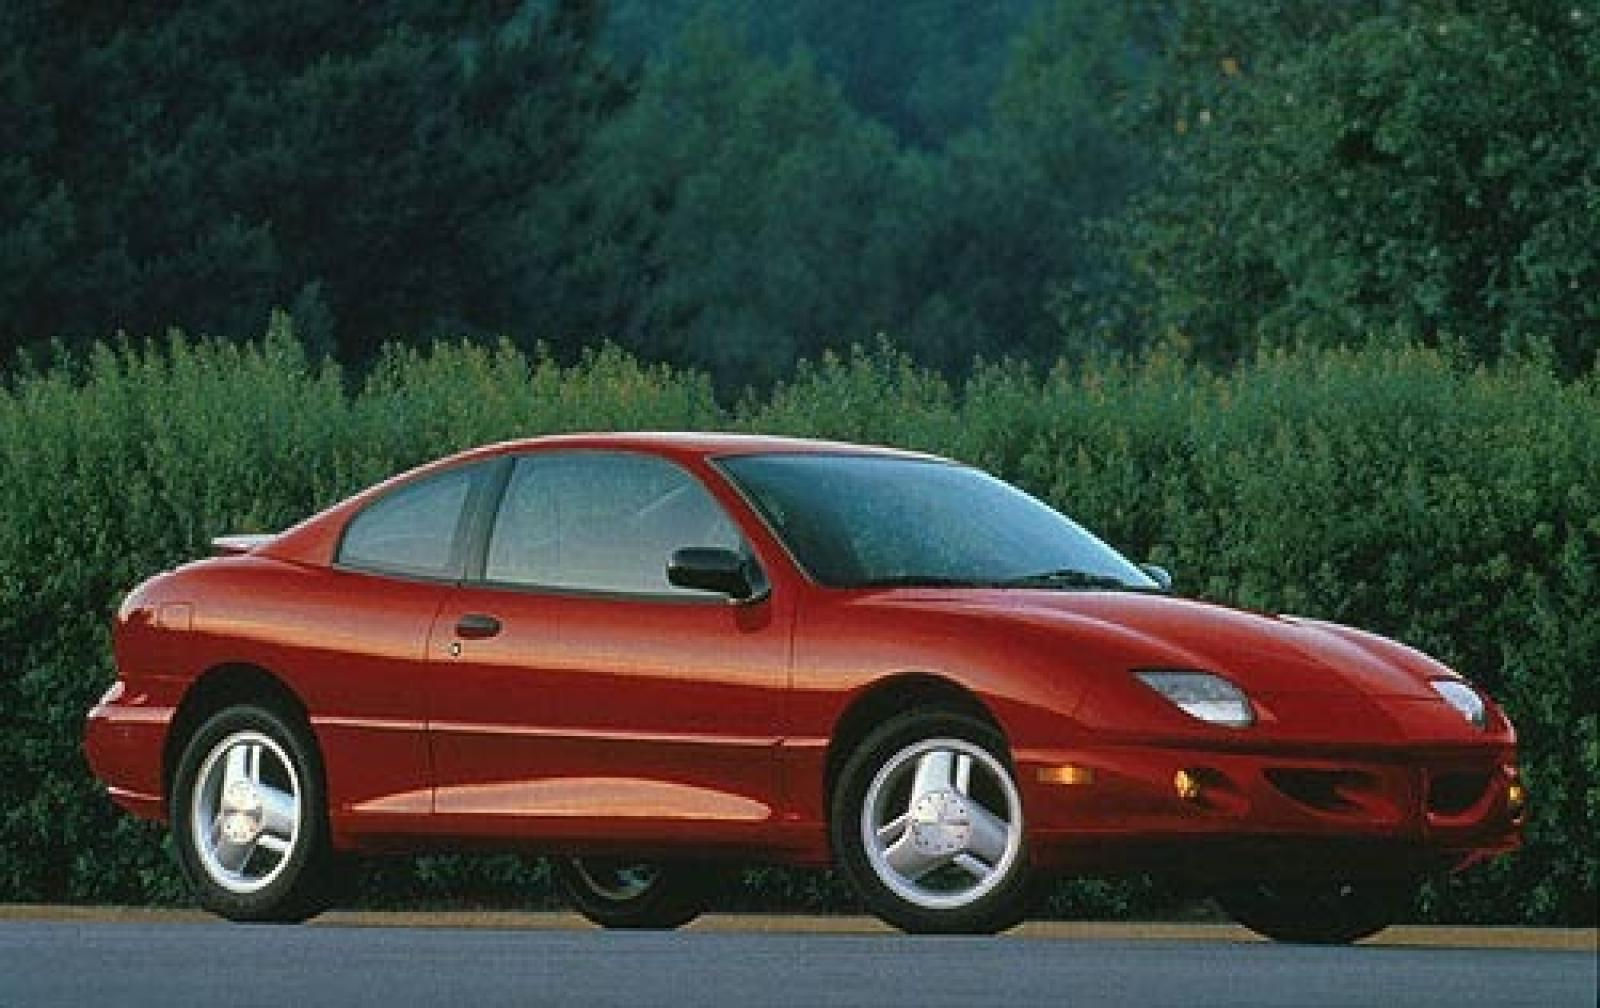 1999 pontiac sunfire information and photos zombiedrive. Black Bedroom Furniture Sets. Home Design Ideas